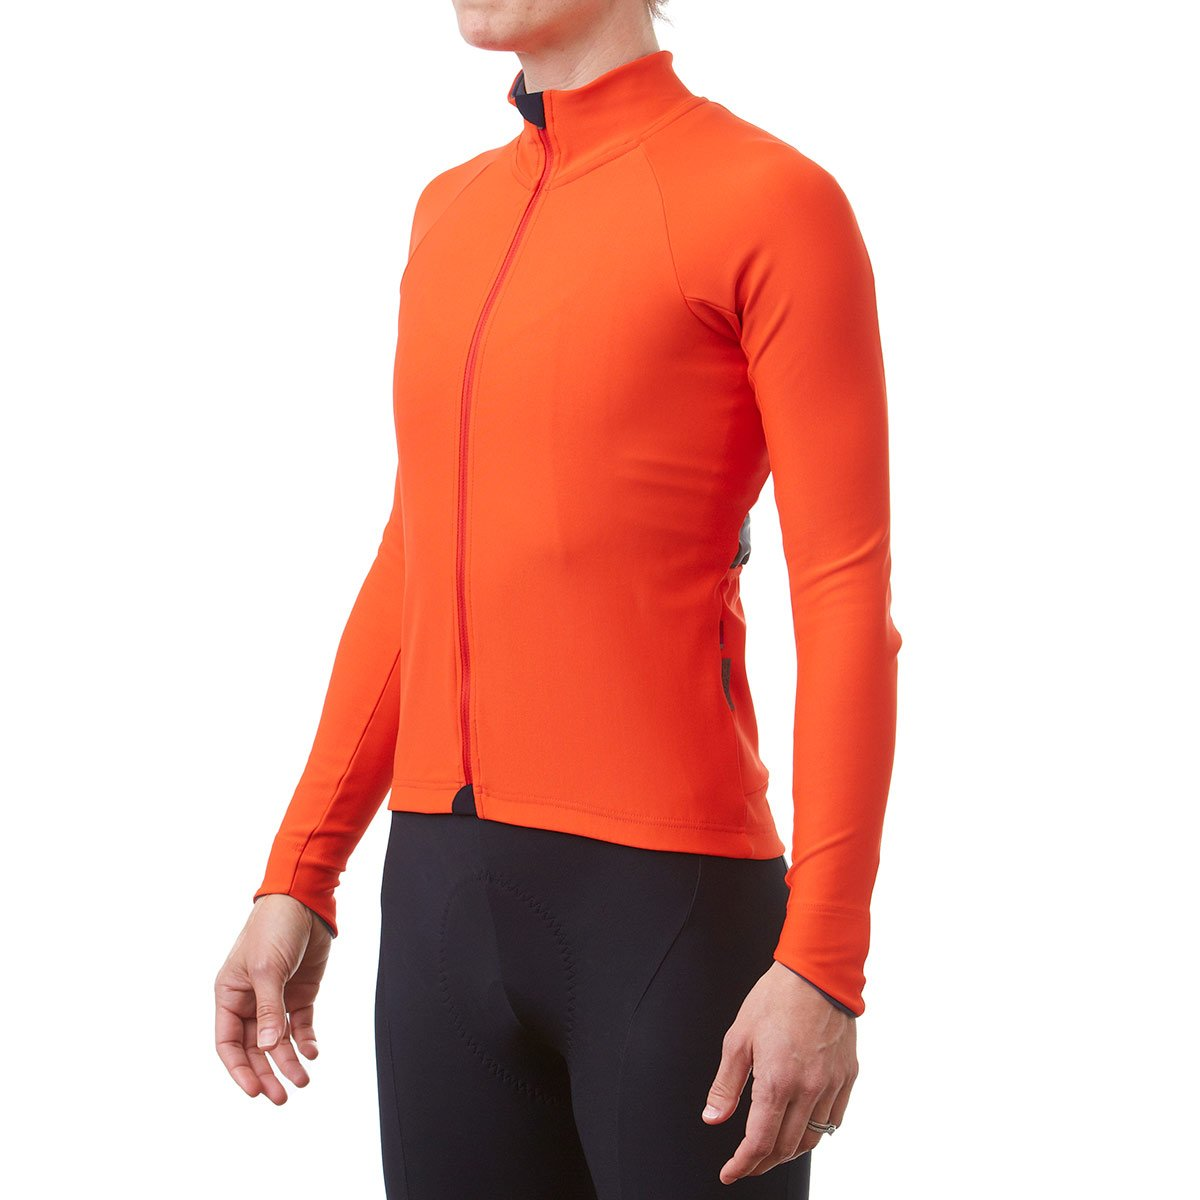 Velocio Women's Recon Thermal L/S Jersey